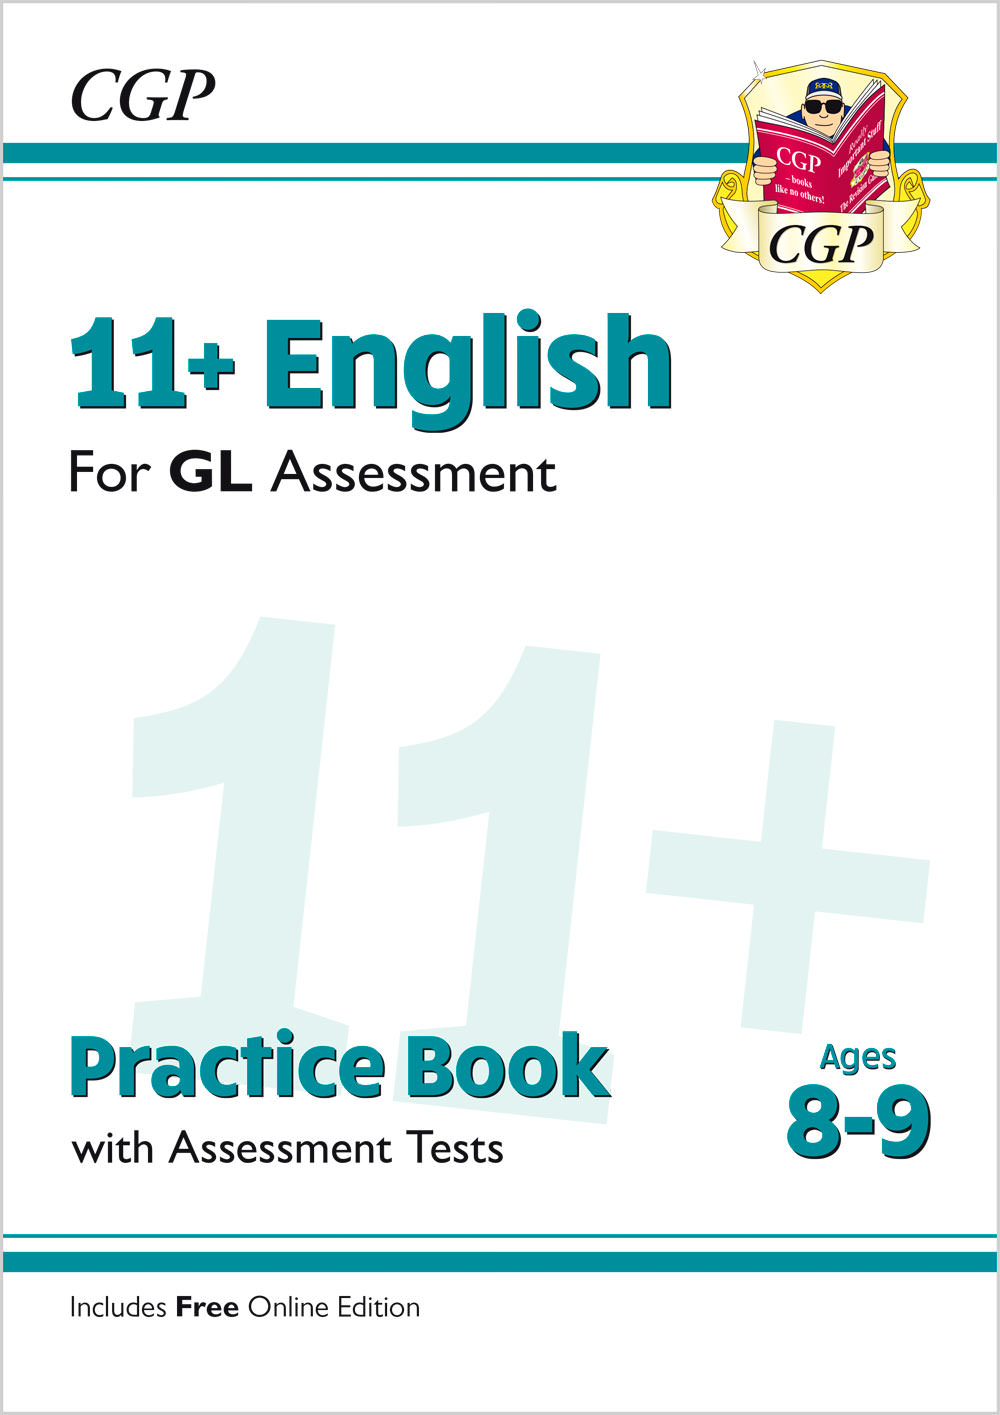 E4QE2 - 11+ GL English Practice Book & Assessment Tests - Ages 8-9 (with Online Edition)